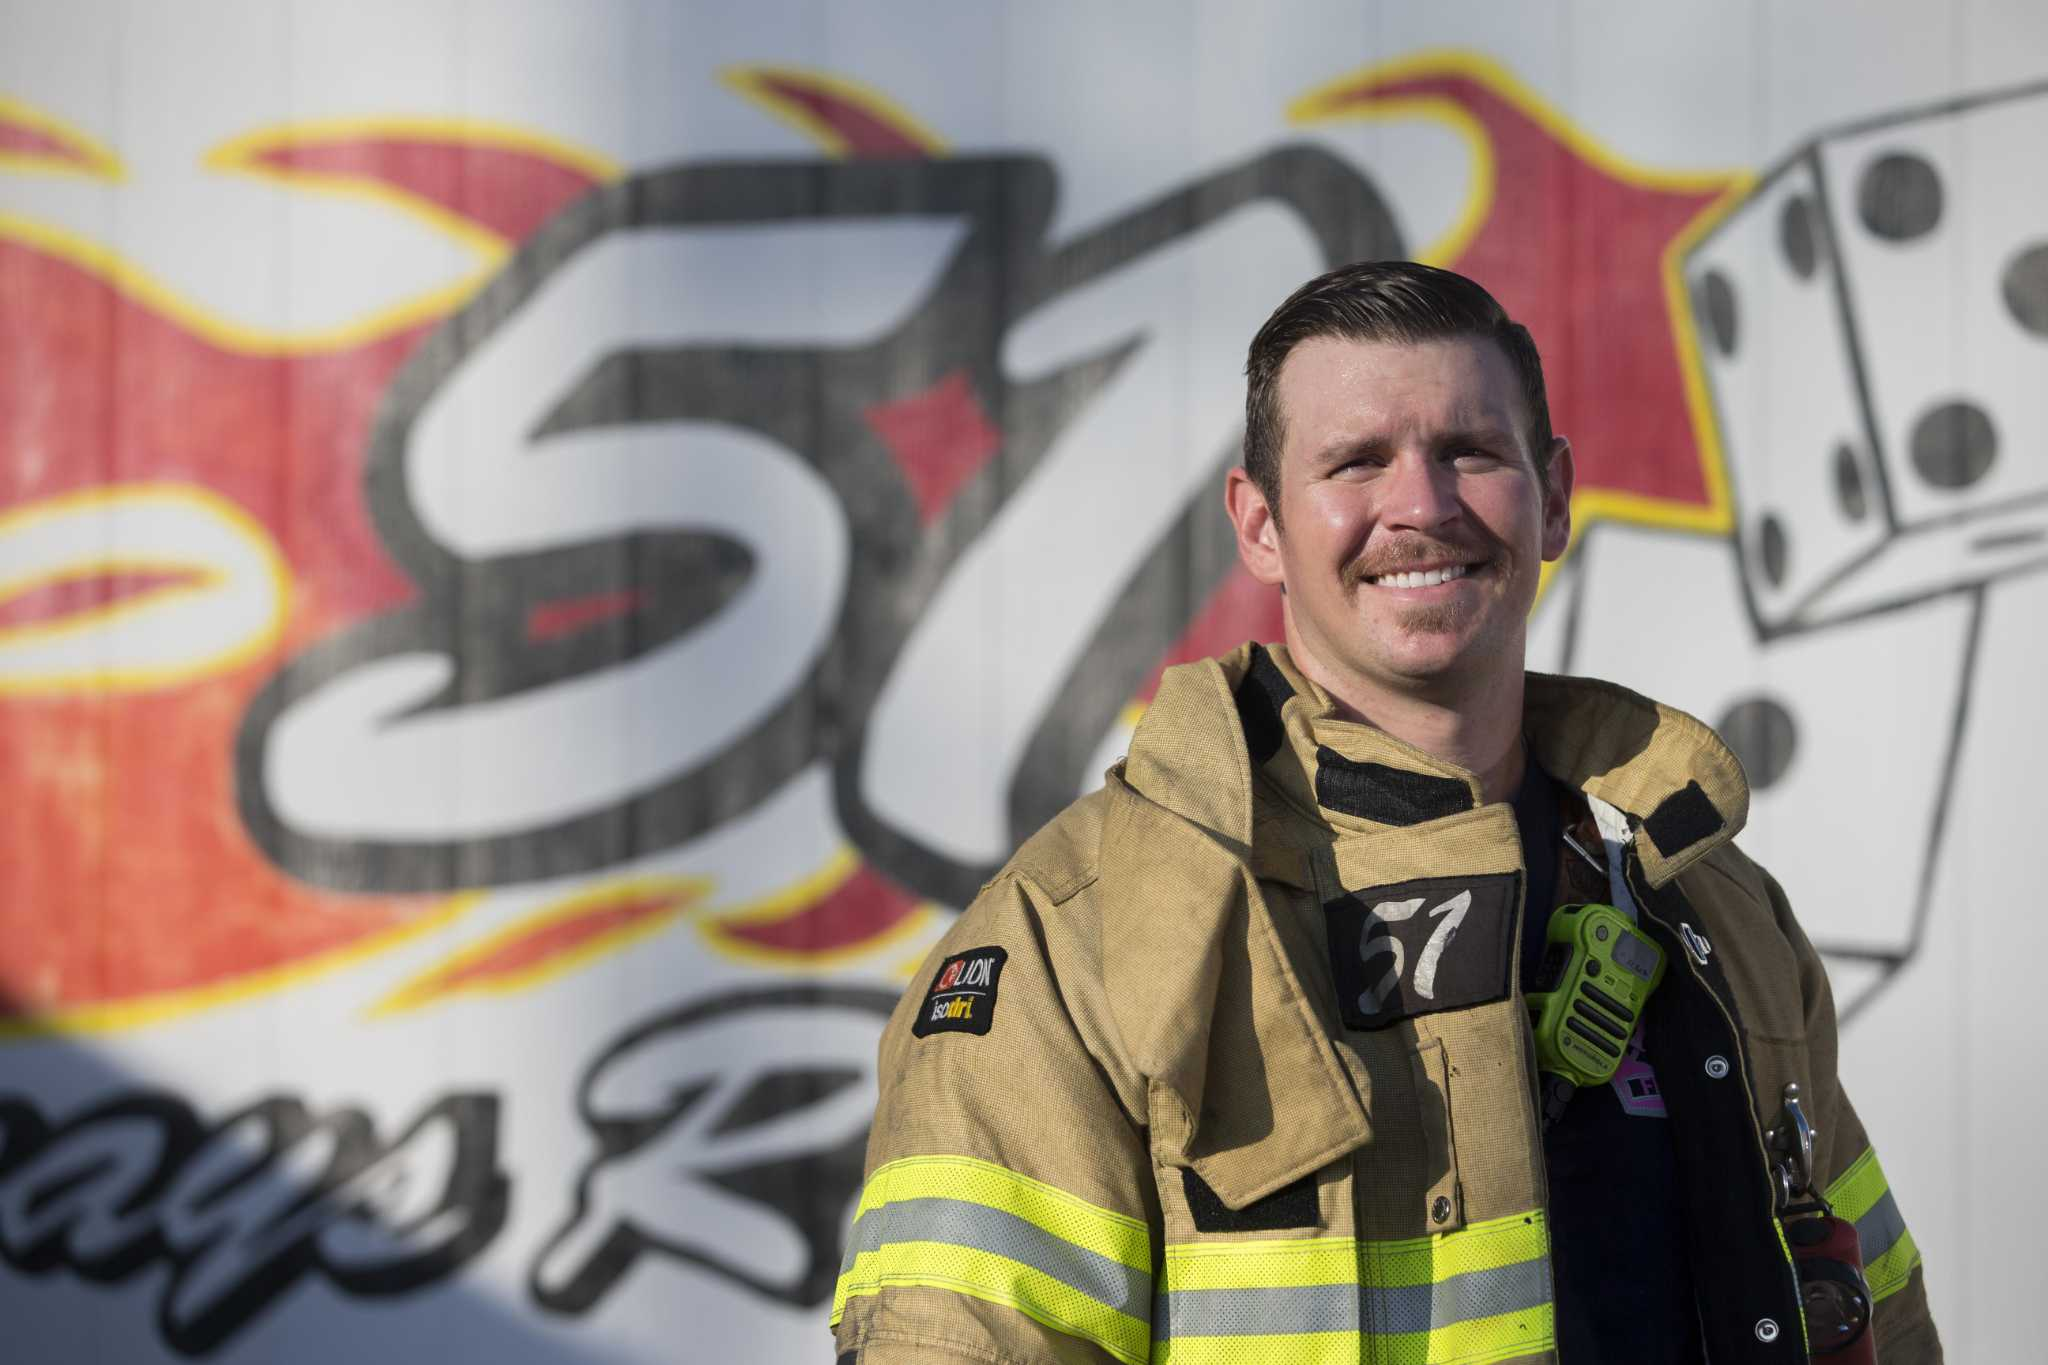 Larry Conrad Gutierrez's high energy helps him tackle firefighter and fitness coach jobs